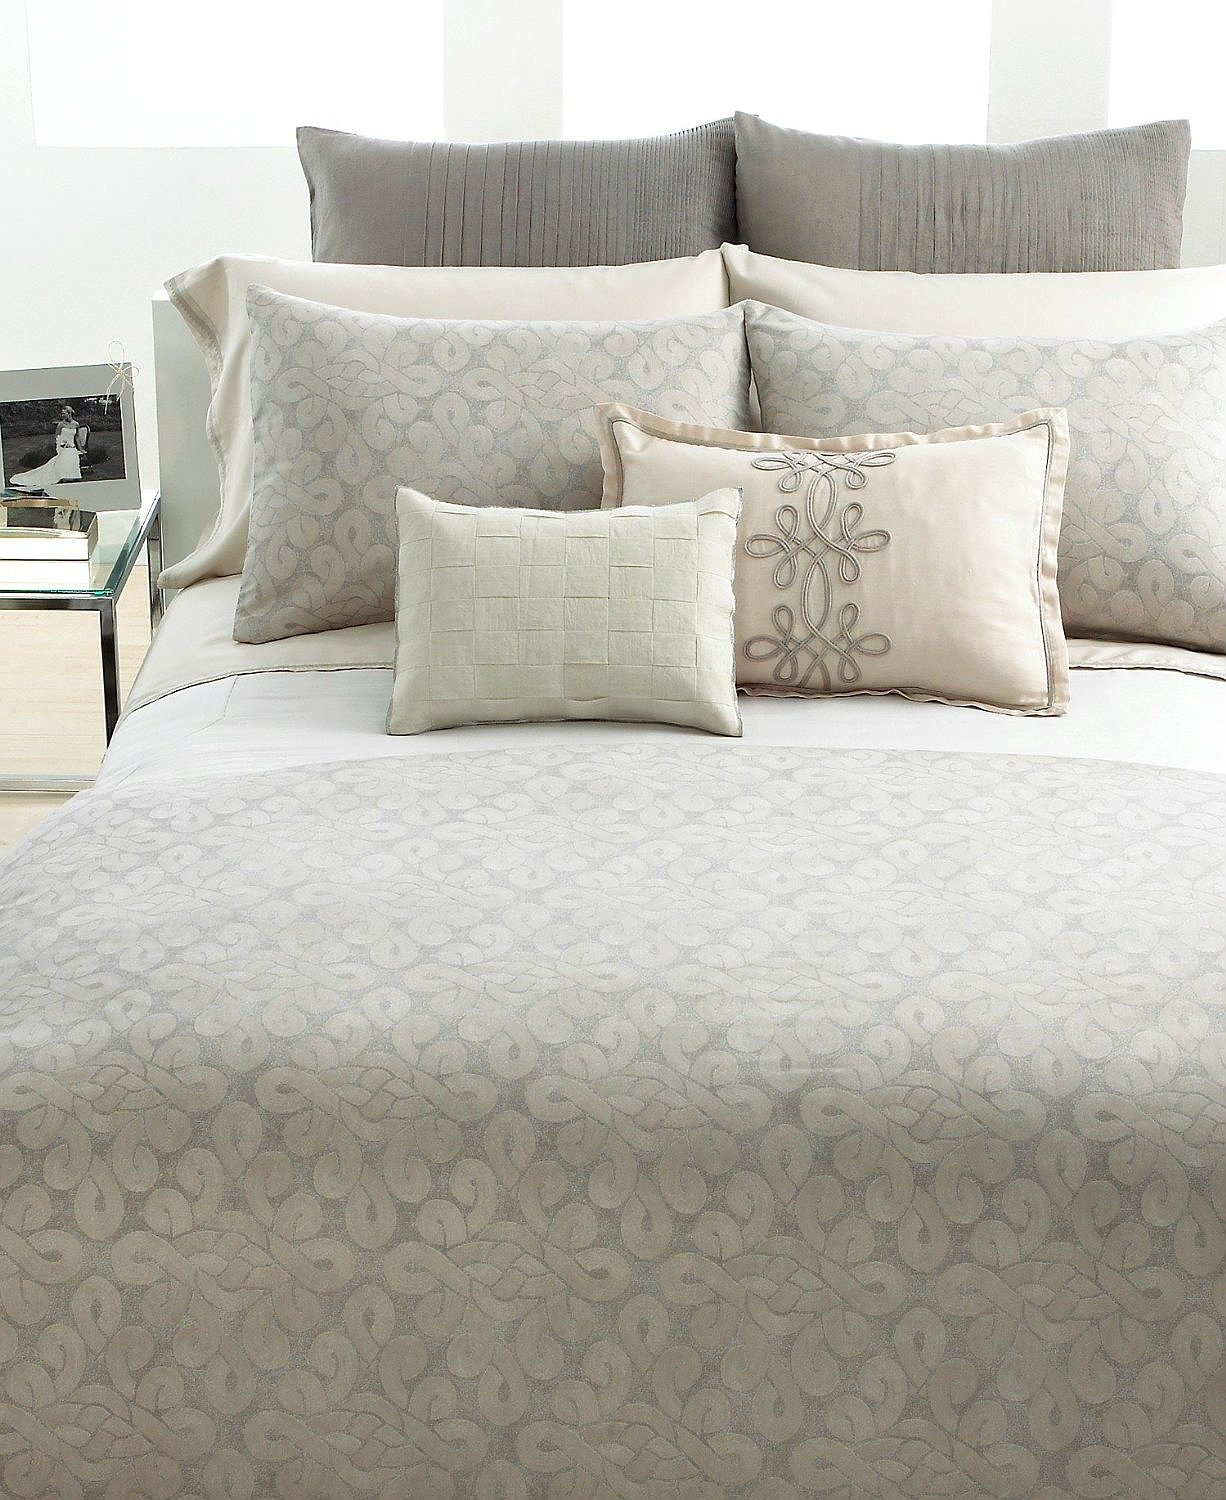 Vera Wang Love Knots Duvet Cover, Platinum, Queen